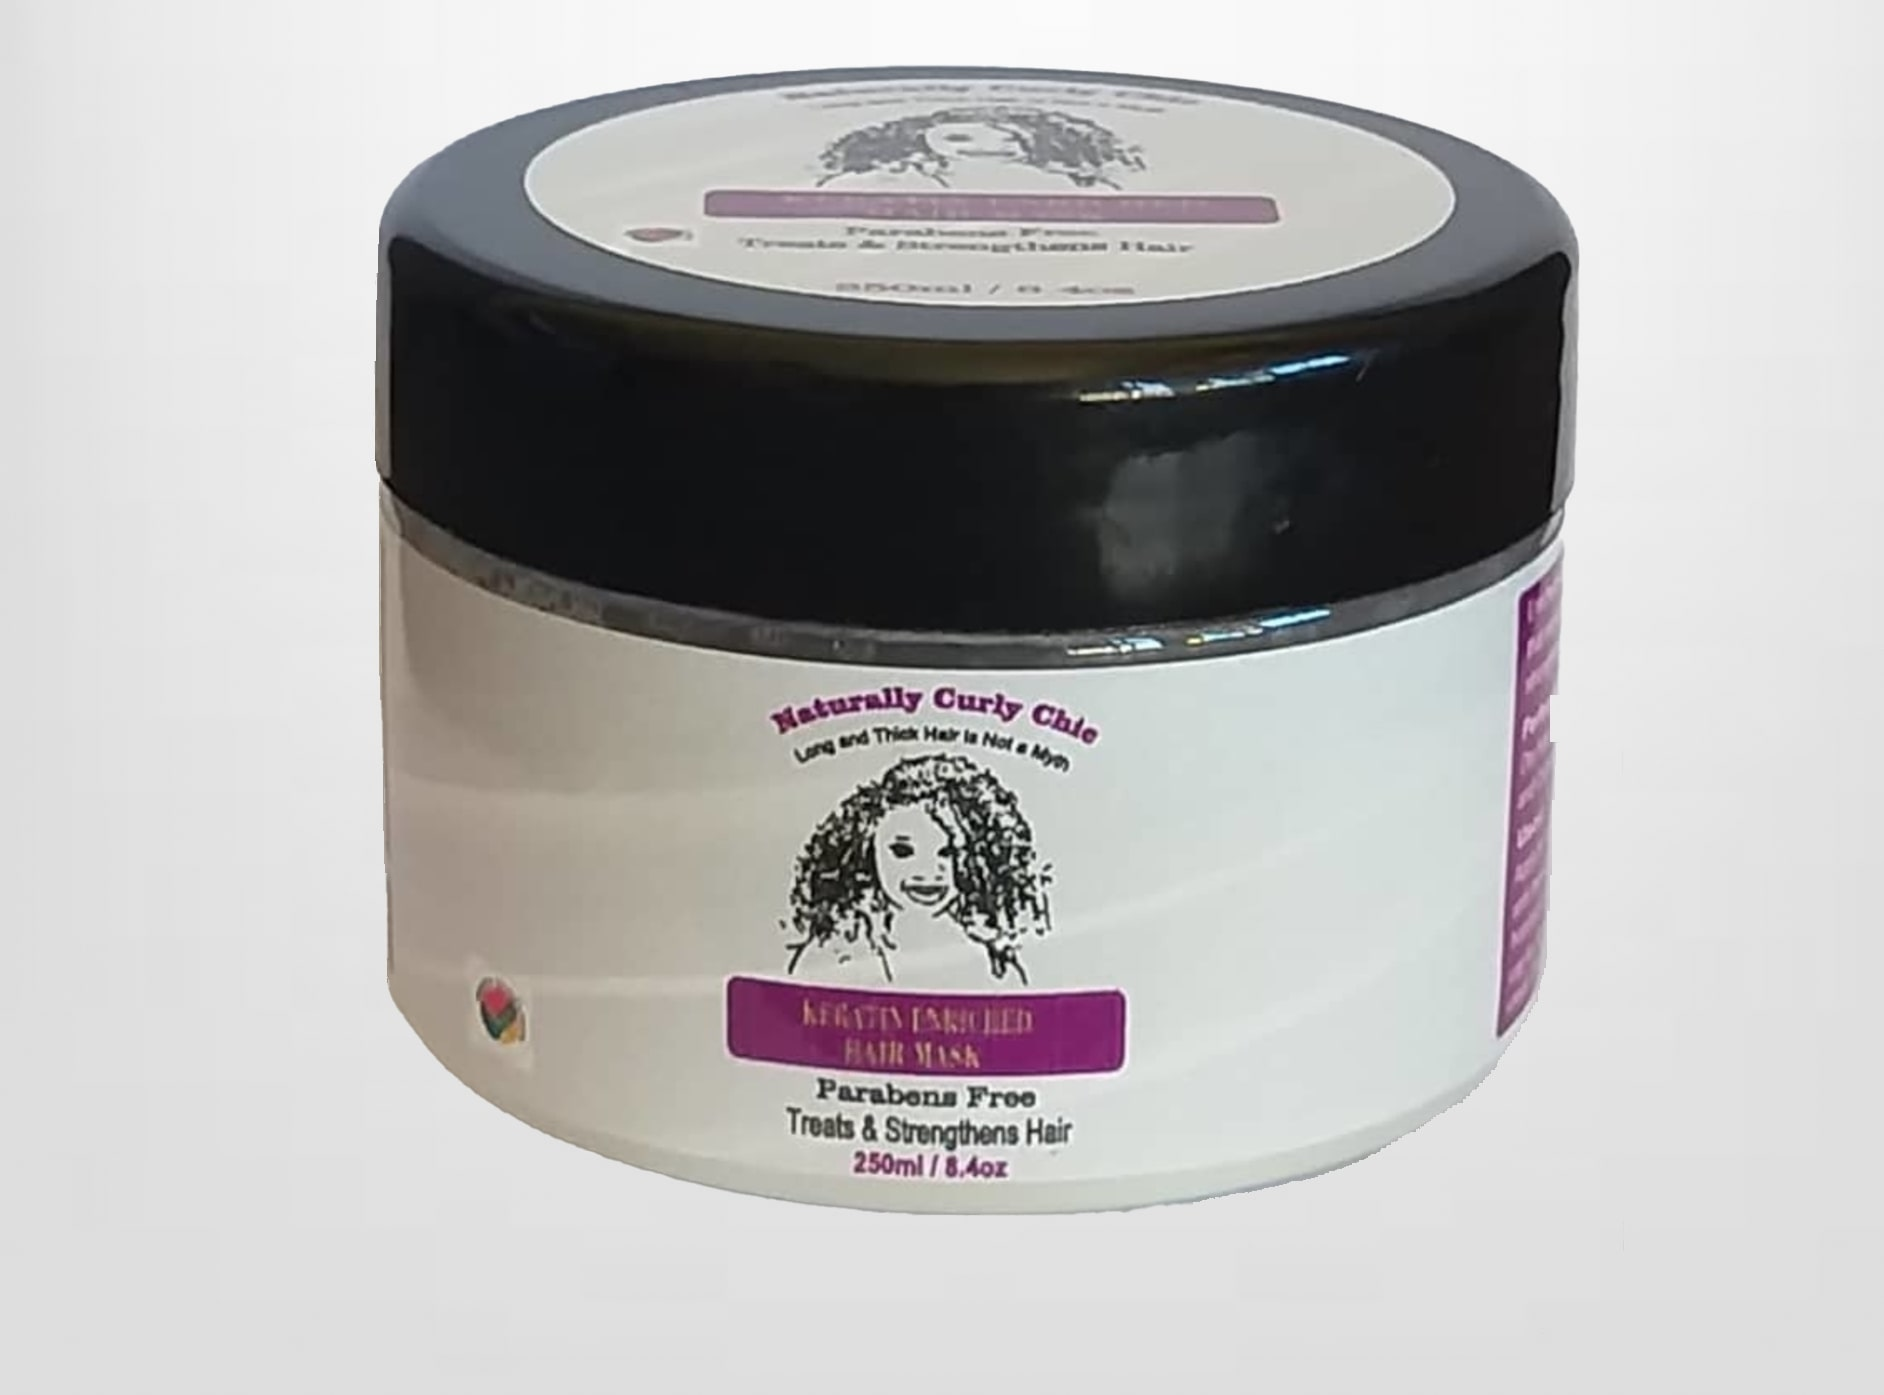 Keratin Enriched Hair Mask | Naturally Curly Chic